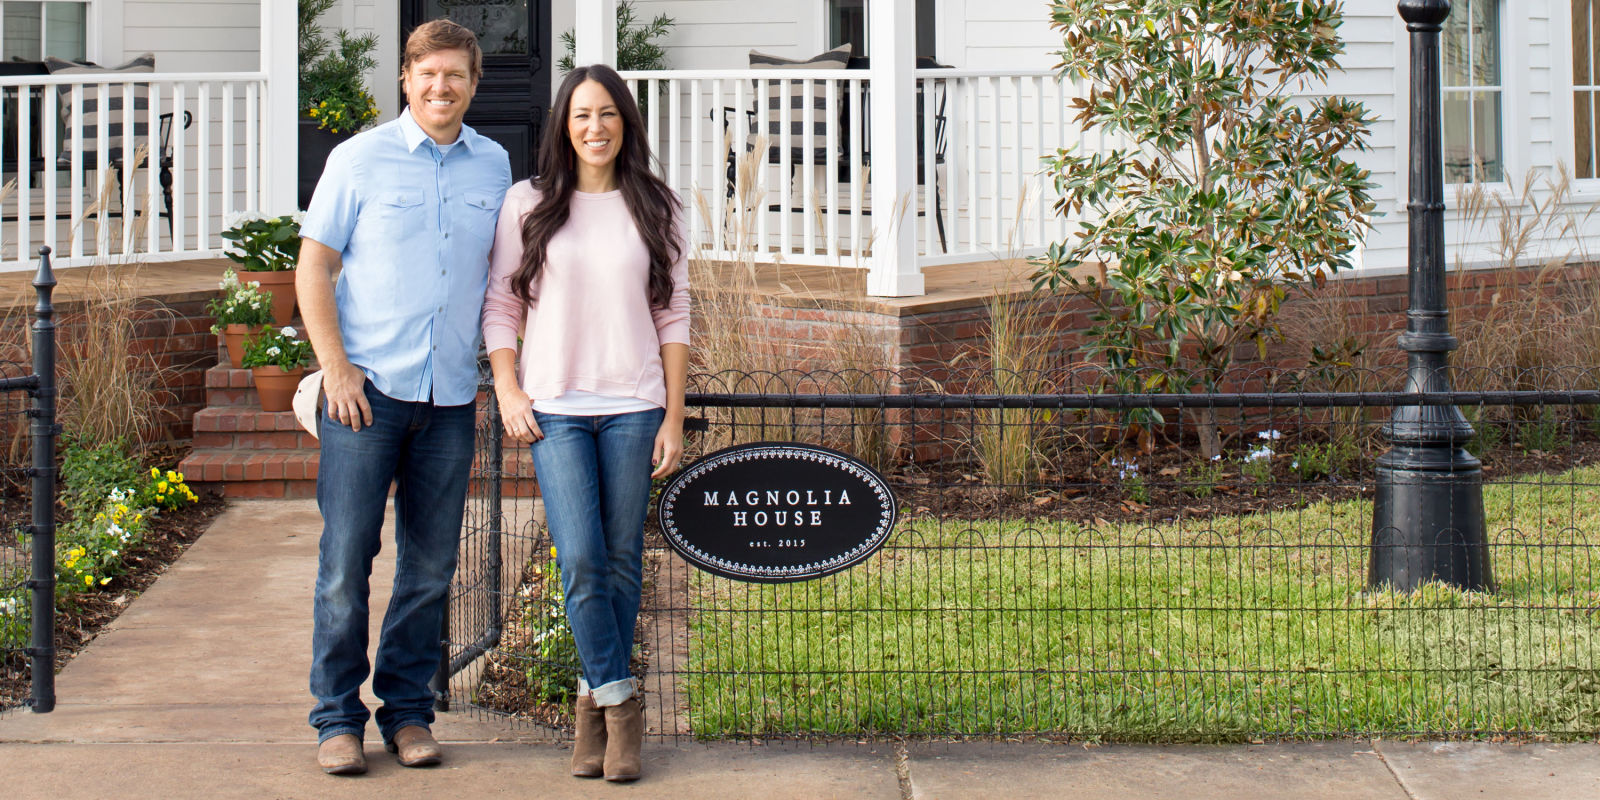 Chip and Joanna Gaines Magnolia House BB Tour Fixer Upper